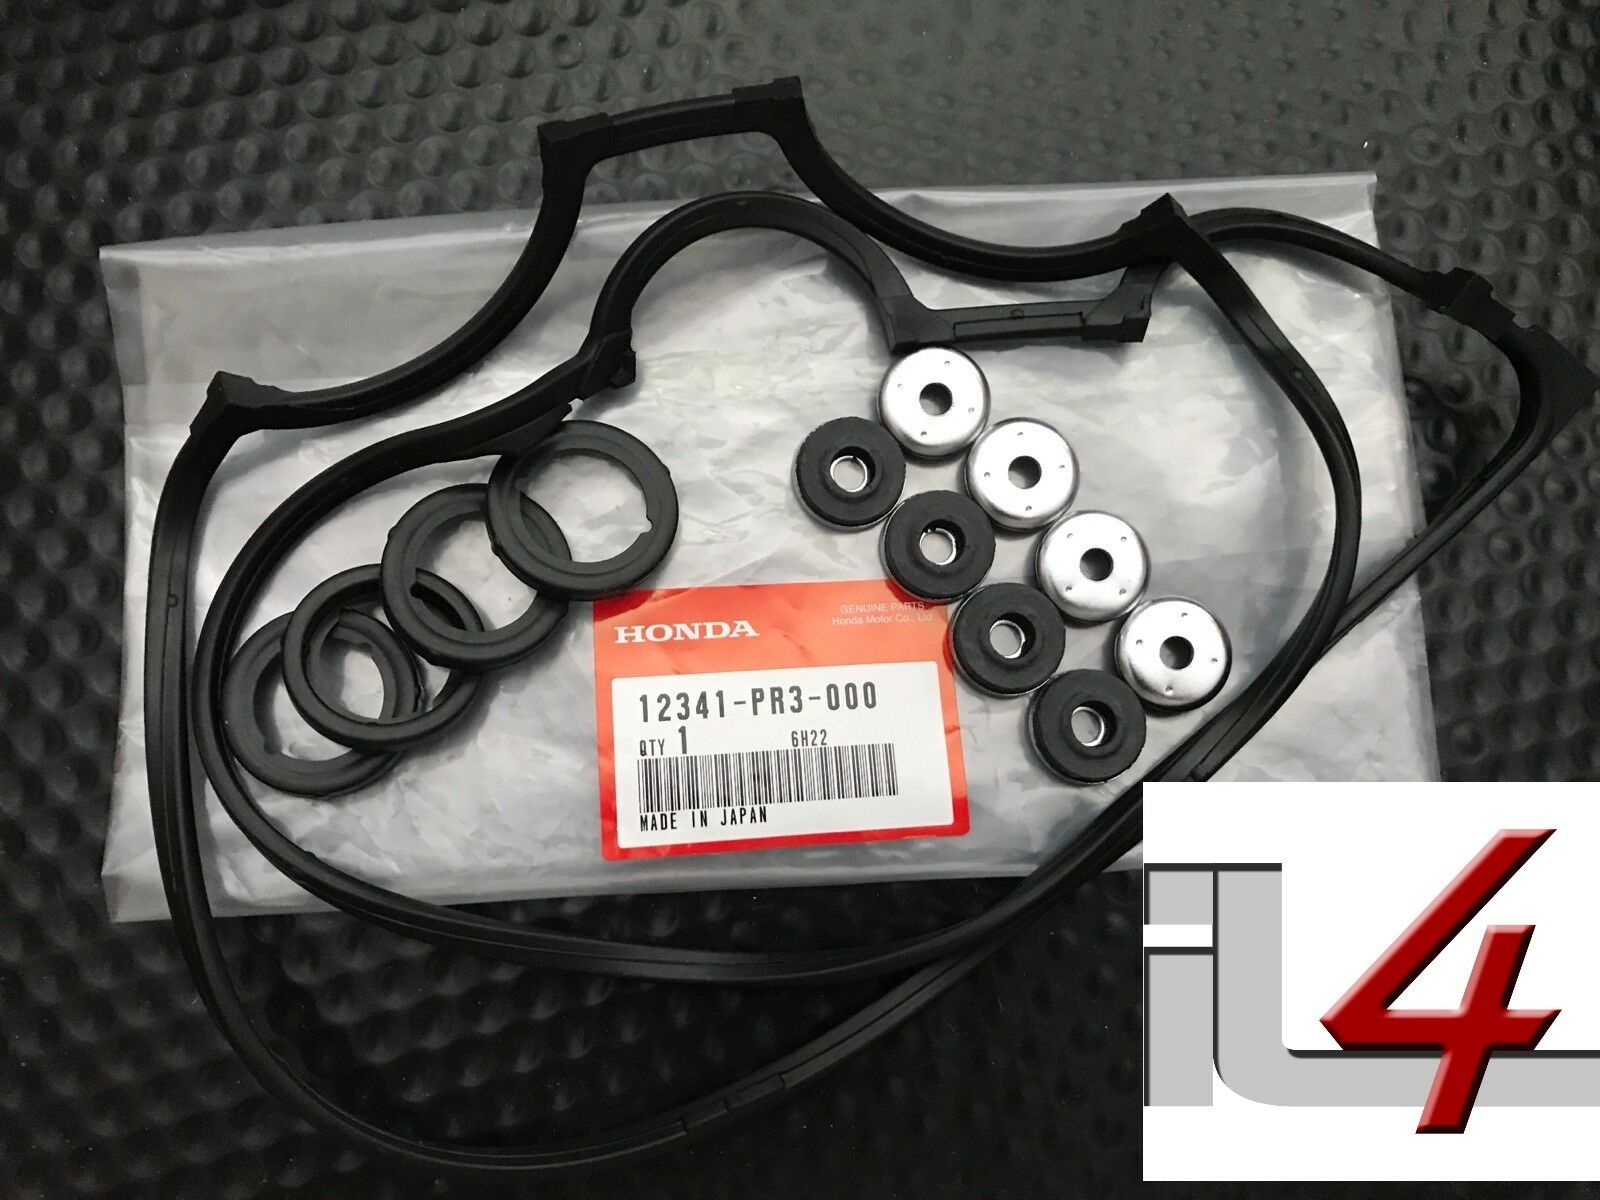 Genuine Oem Honda Valve Cover Gasket Kit Set Acura B Series 2001 Crv Parts Dohc V 1 Of 1only 4 Available